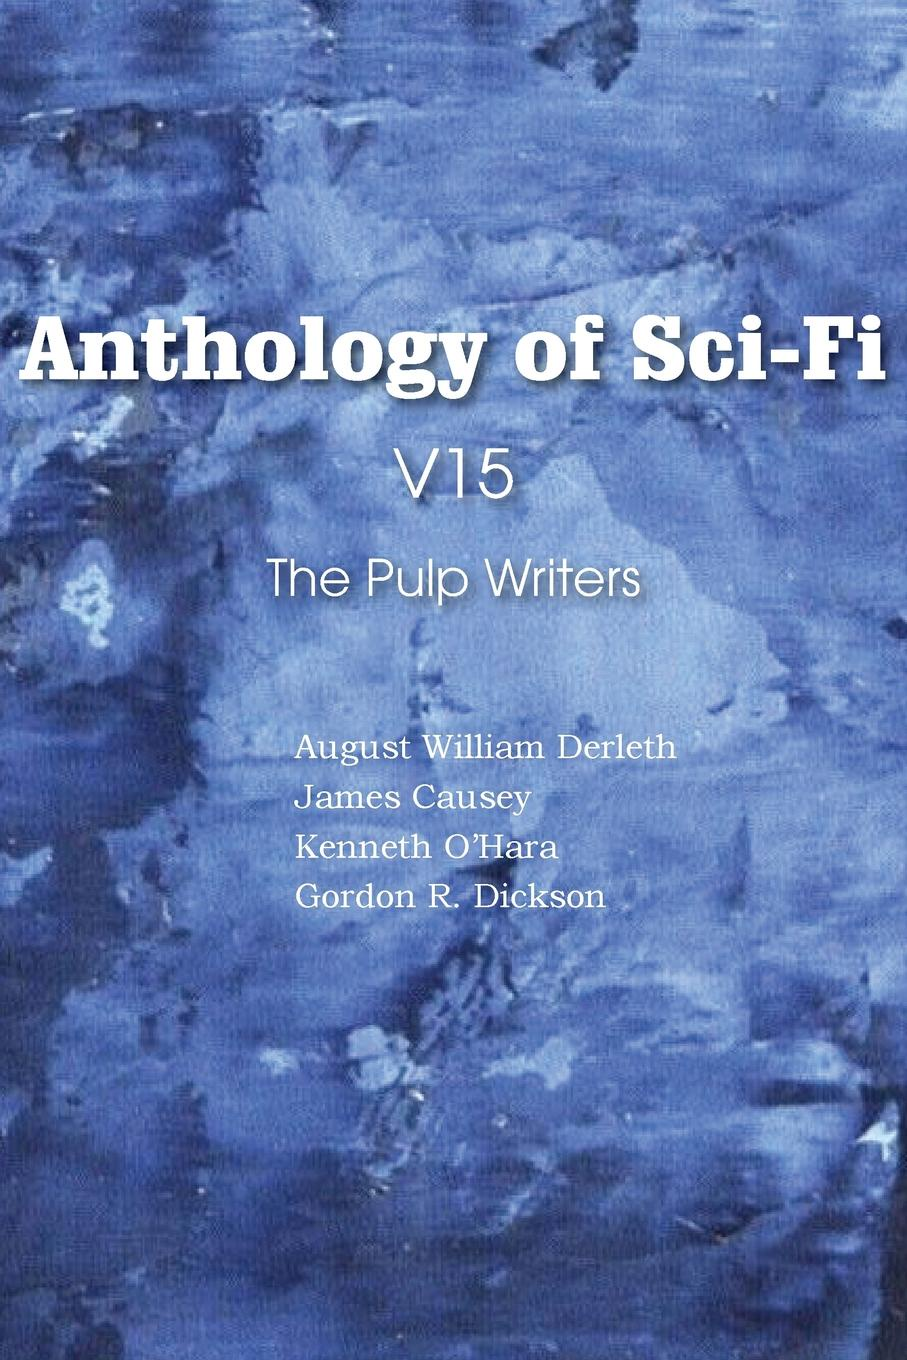 August William Derleth, Kenneth O'Hara, James Causey Anthology of Sci-Fi V15, the Pulp Writers аккумулятор для телефона ibatt ib fly ts110 m1766